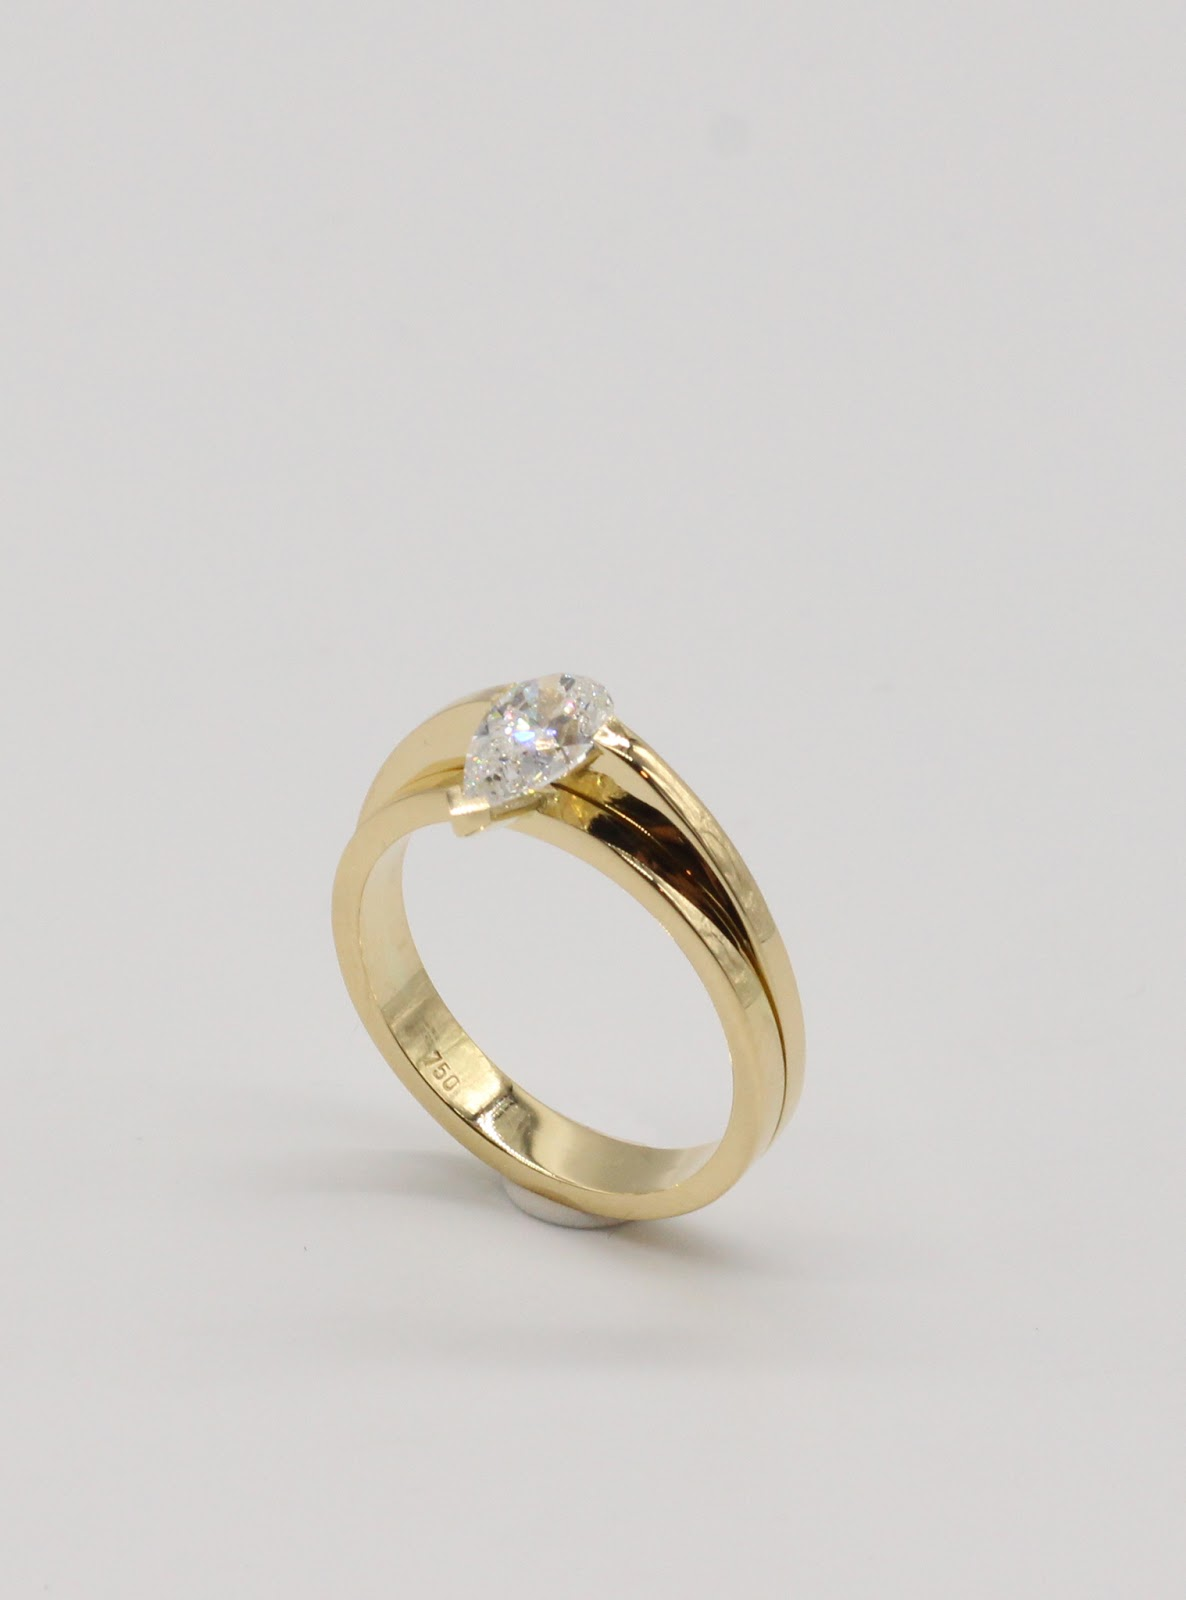 Engagement band in 18k Yellow Gold with White Pear Diamond.